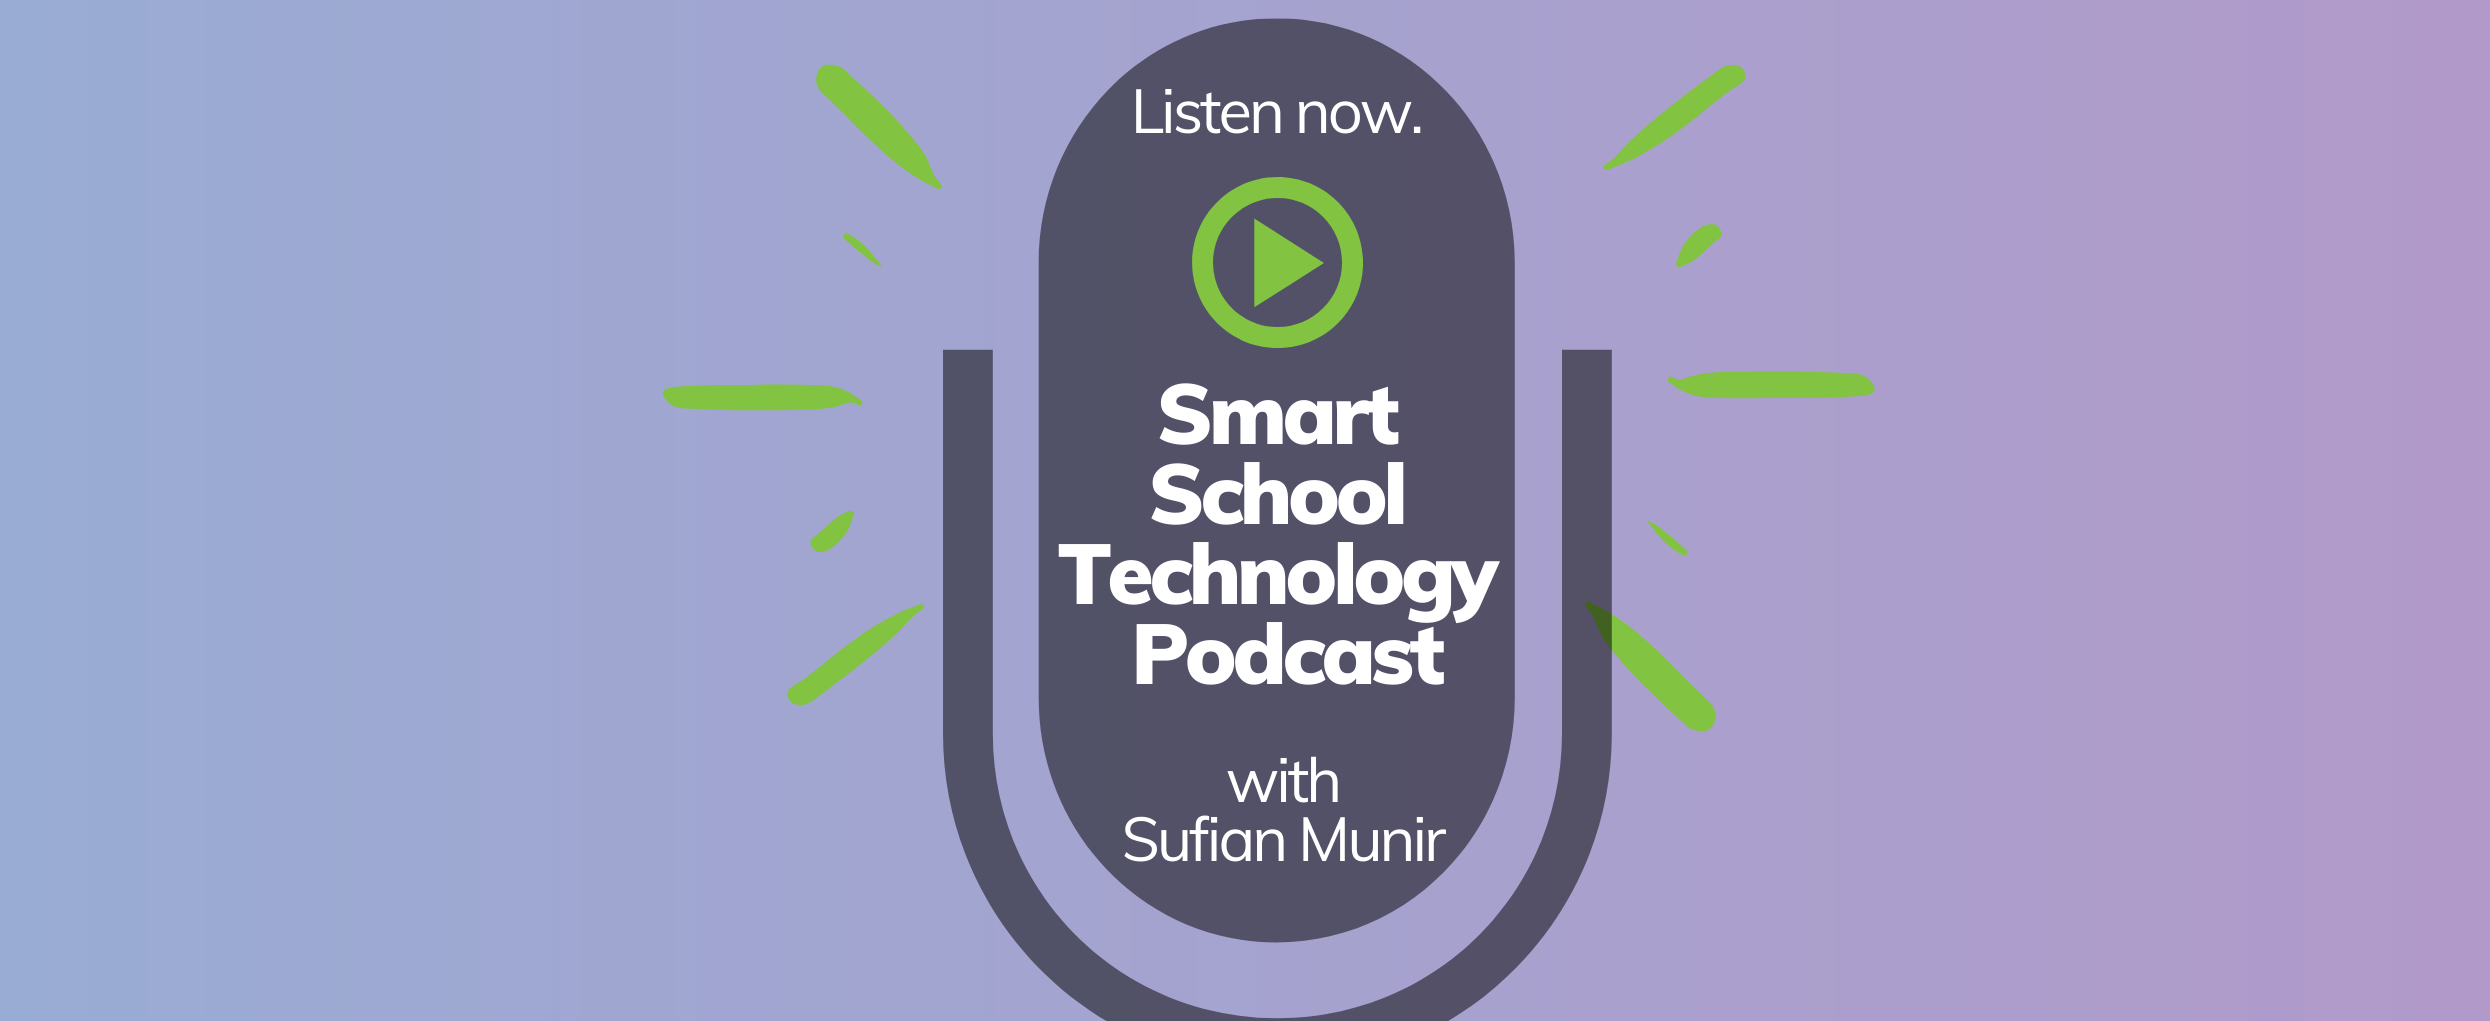 Sufian Munir - Smart School Technology